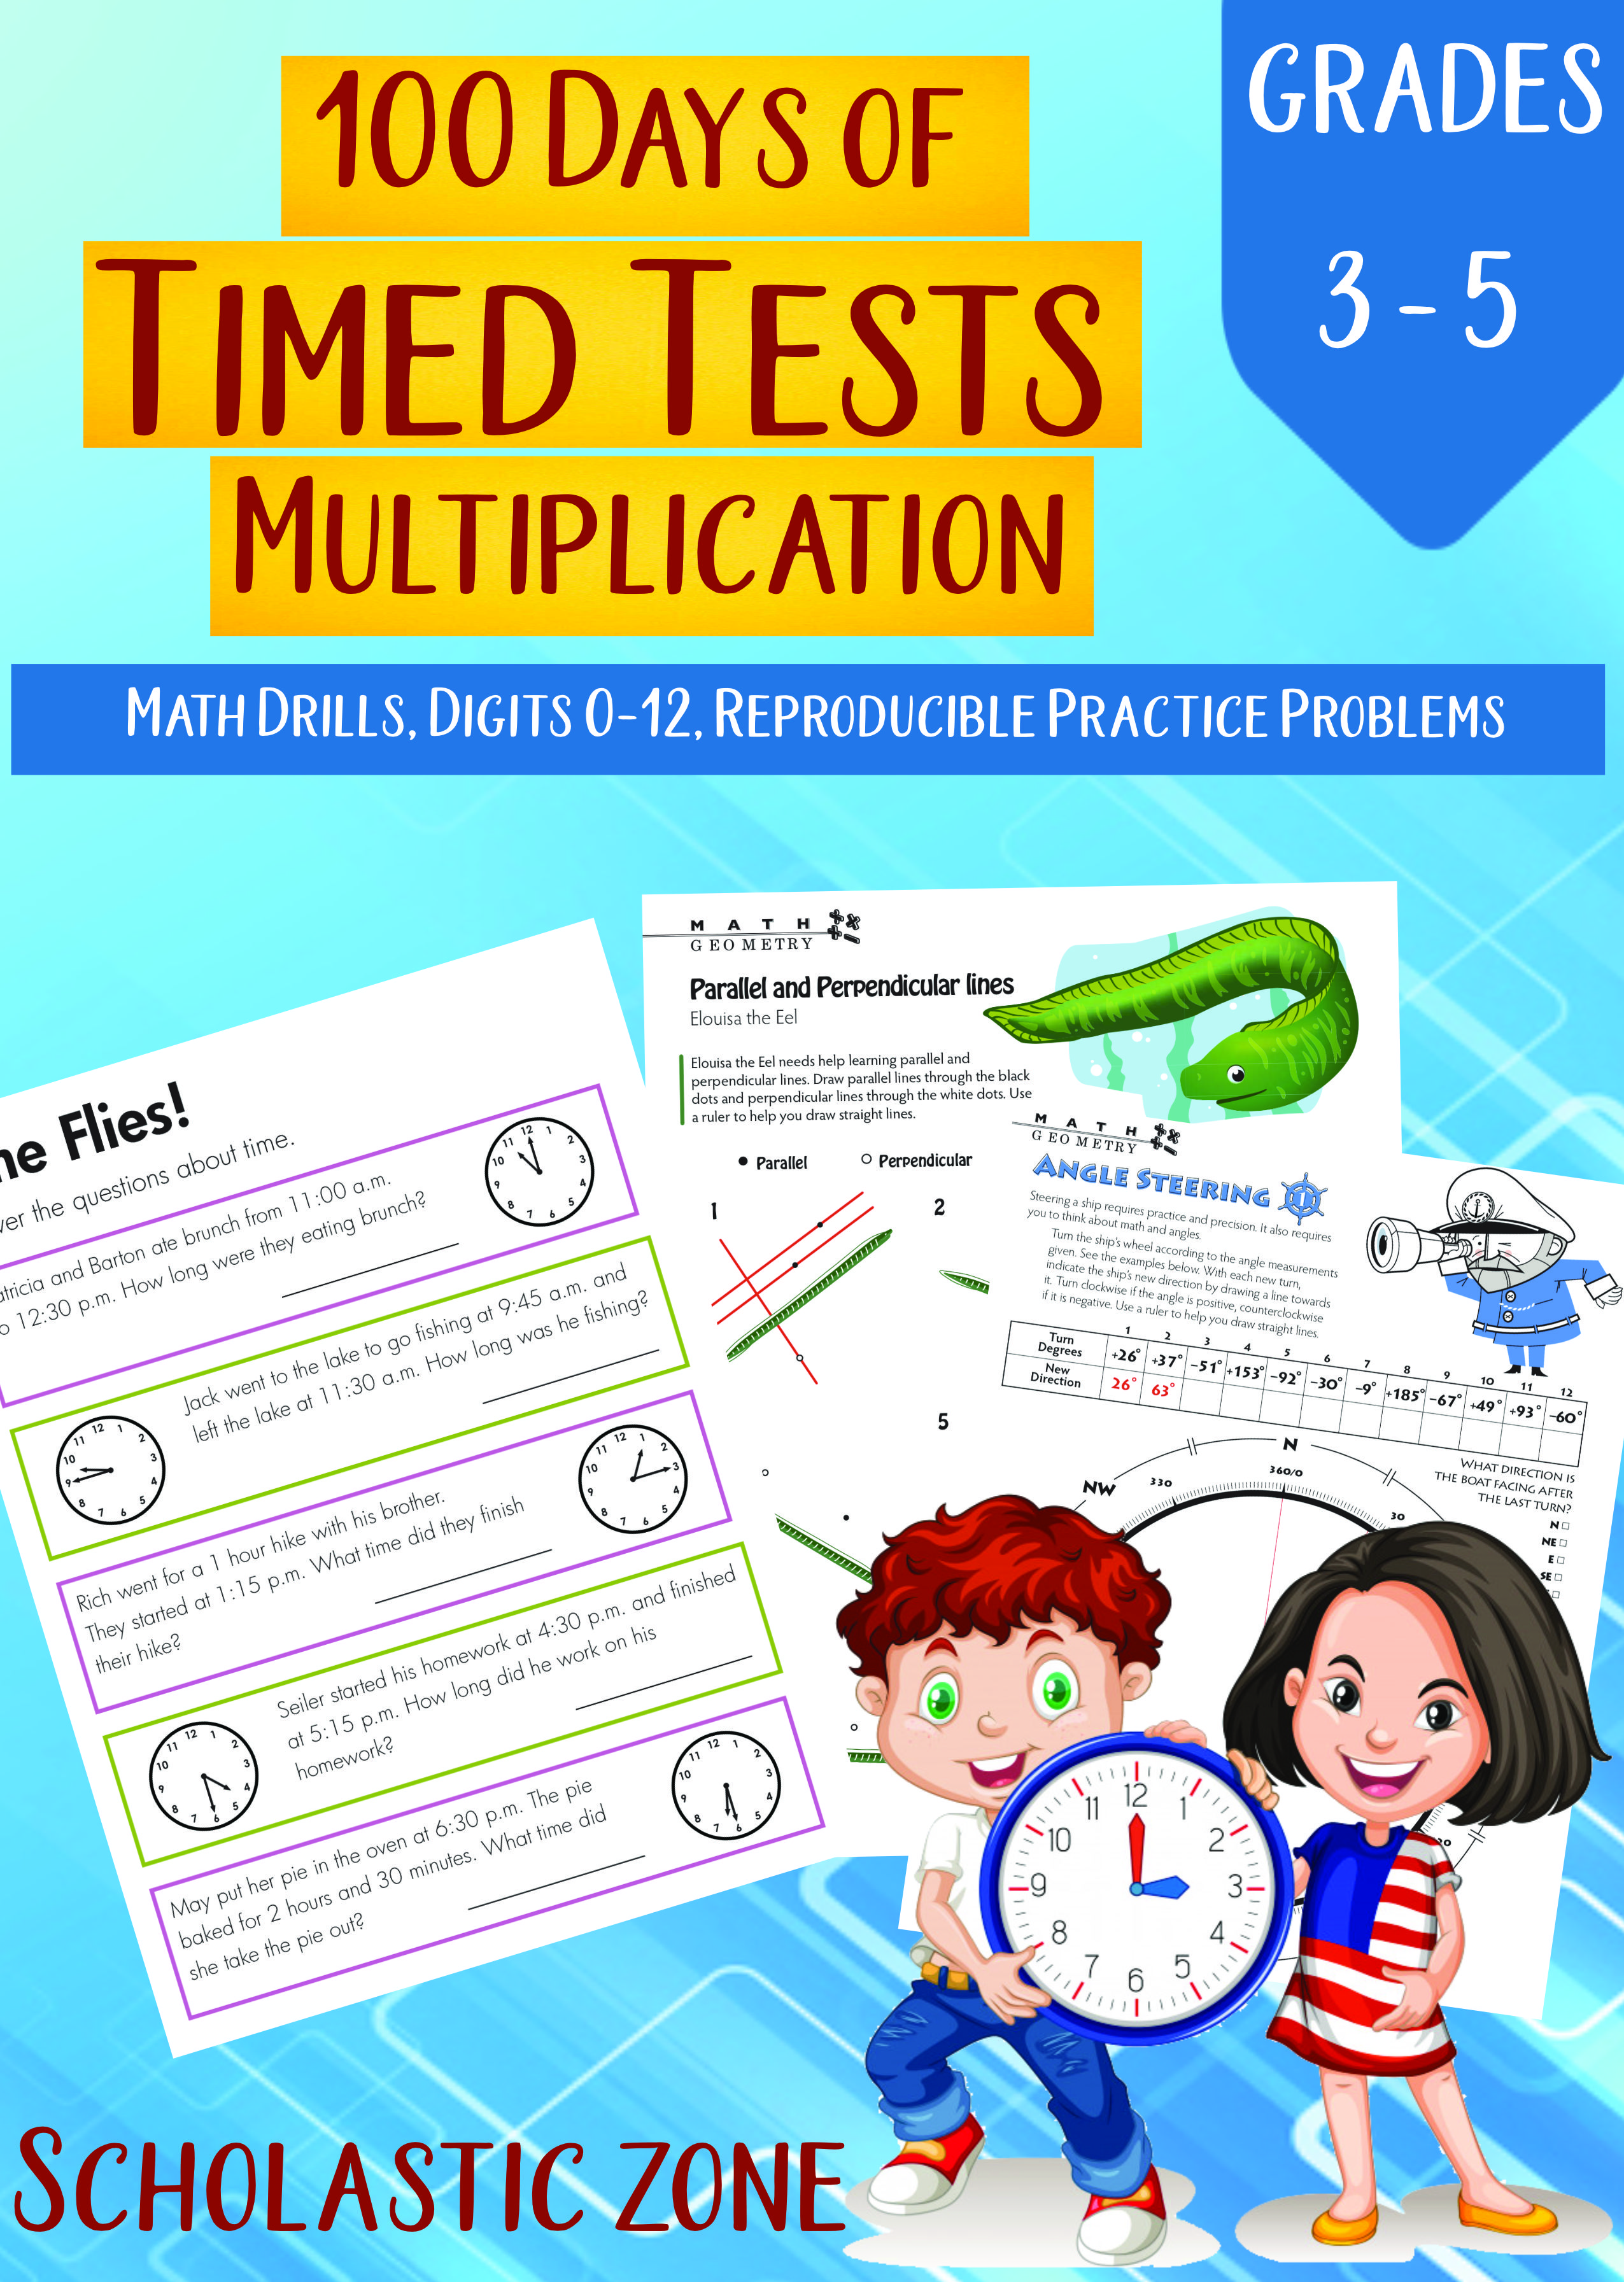 100 Days Of Timed Tests Multiplication Grades 3 5 Math